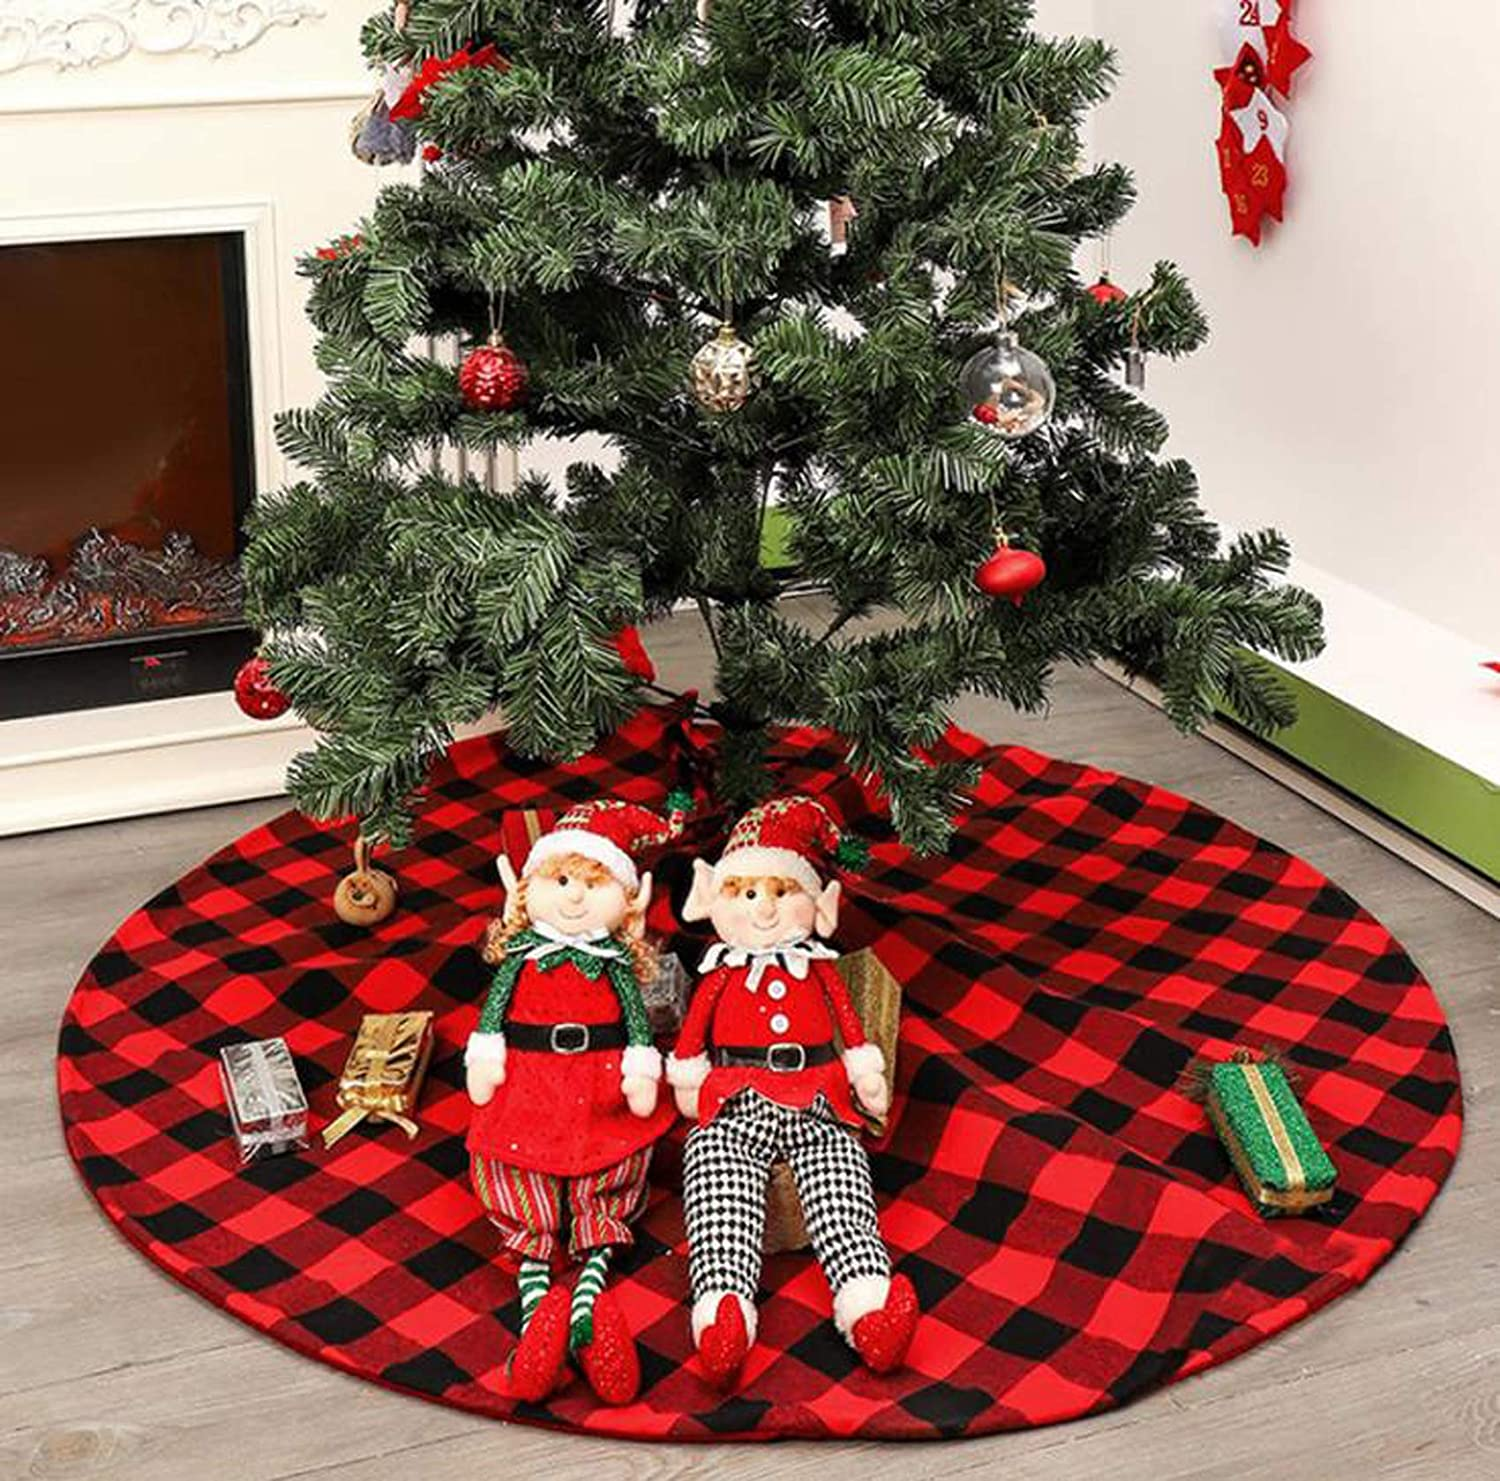 48 Inch Red and Black Christmas Tree Skirt Classic Large Buffalo Check Plaid Double Layers Winter New Year House Decoration Supplies for Xmas Holiday Party